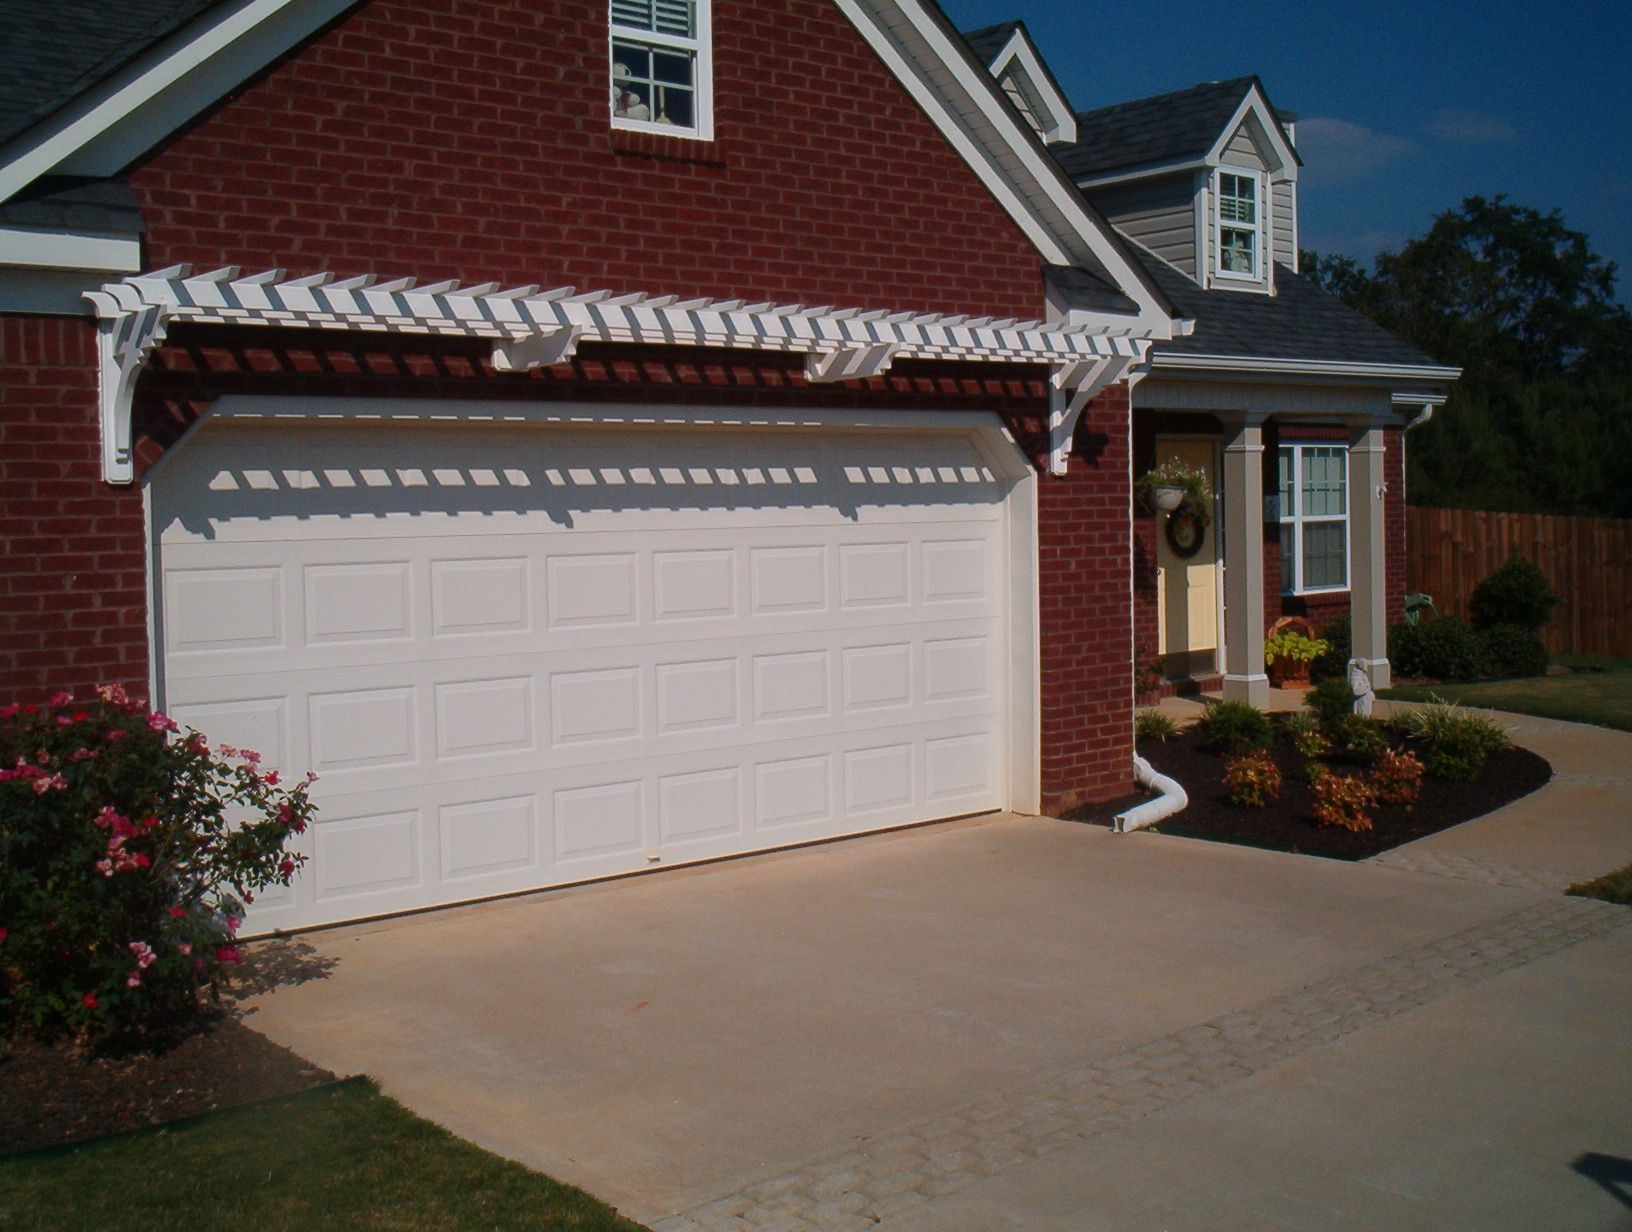 Wonderful Garage Door Trellis Or Arbor. A Frame Garage Front. Garage Arbor Before  After Garage Arbor